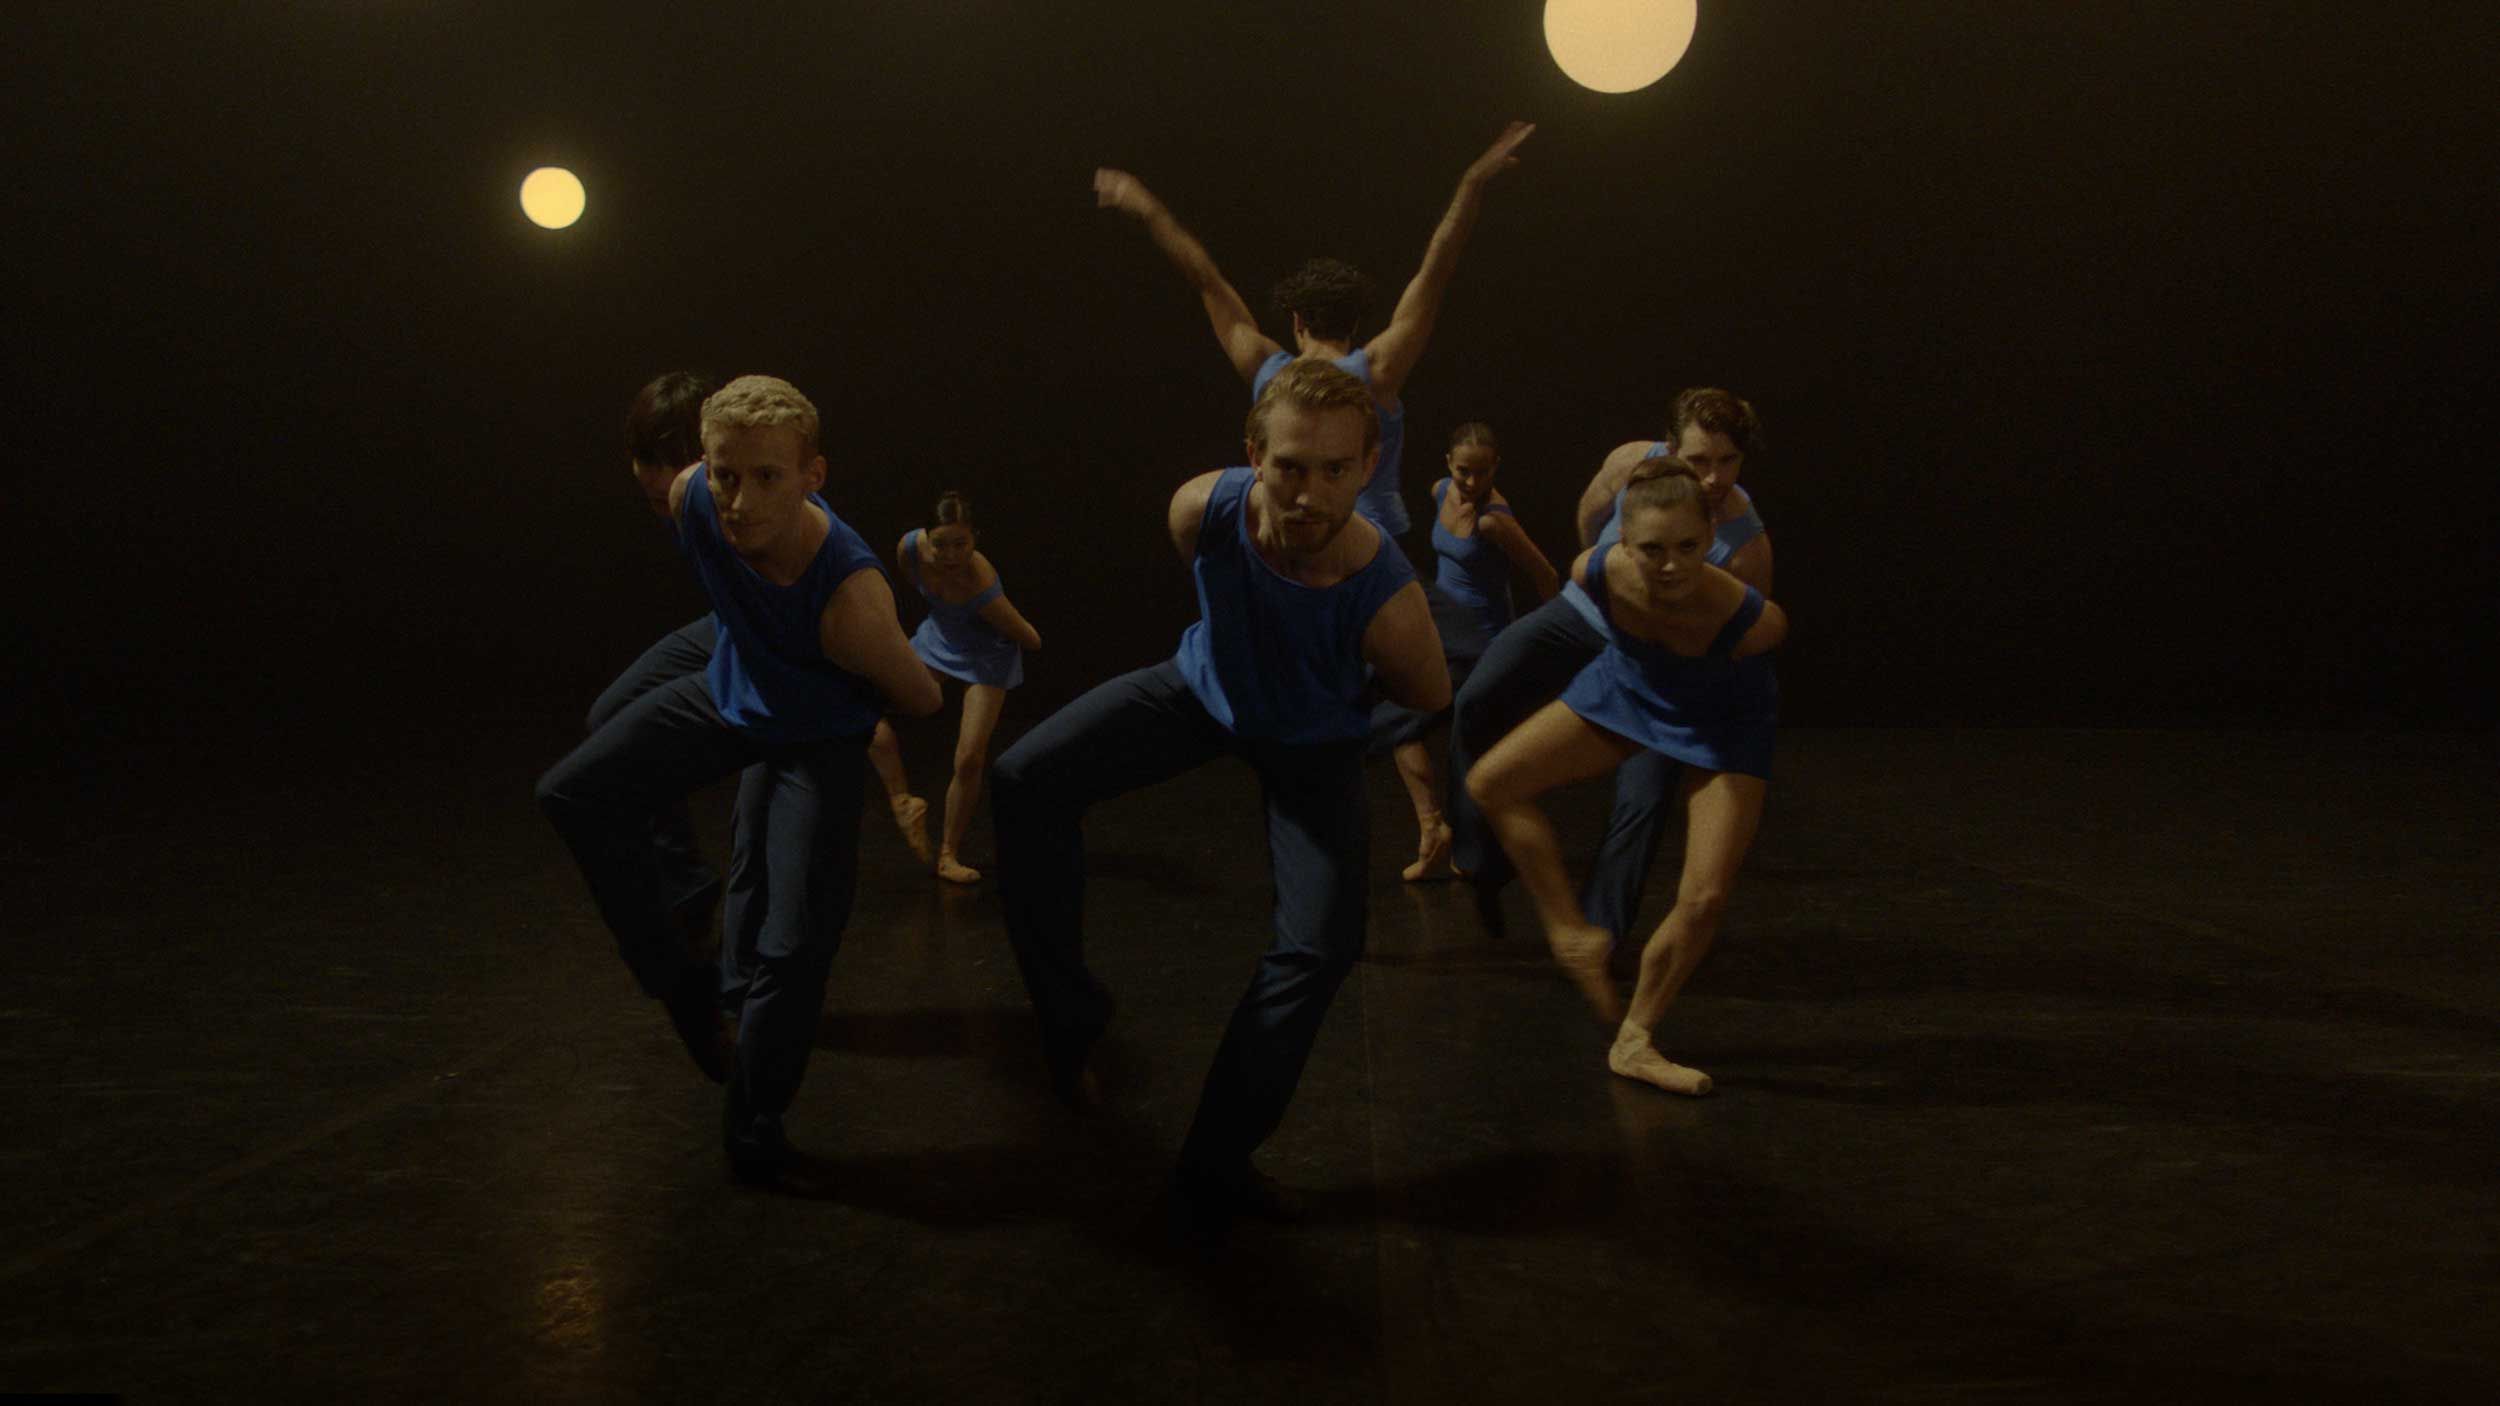 English National Ballet dancers in Take Five Blues by Stina Quagebeur